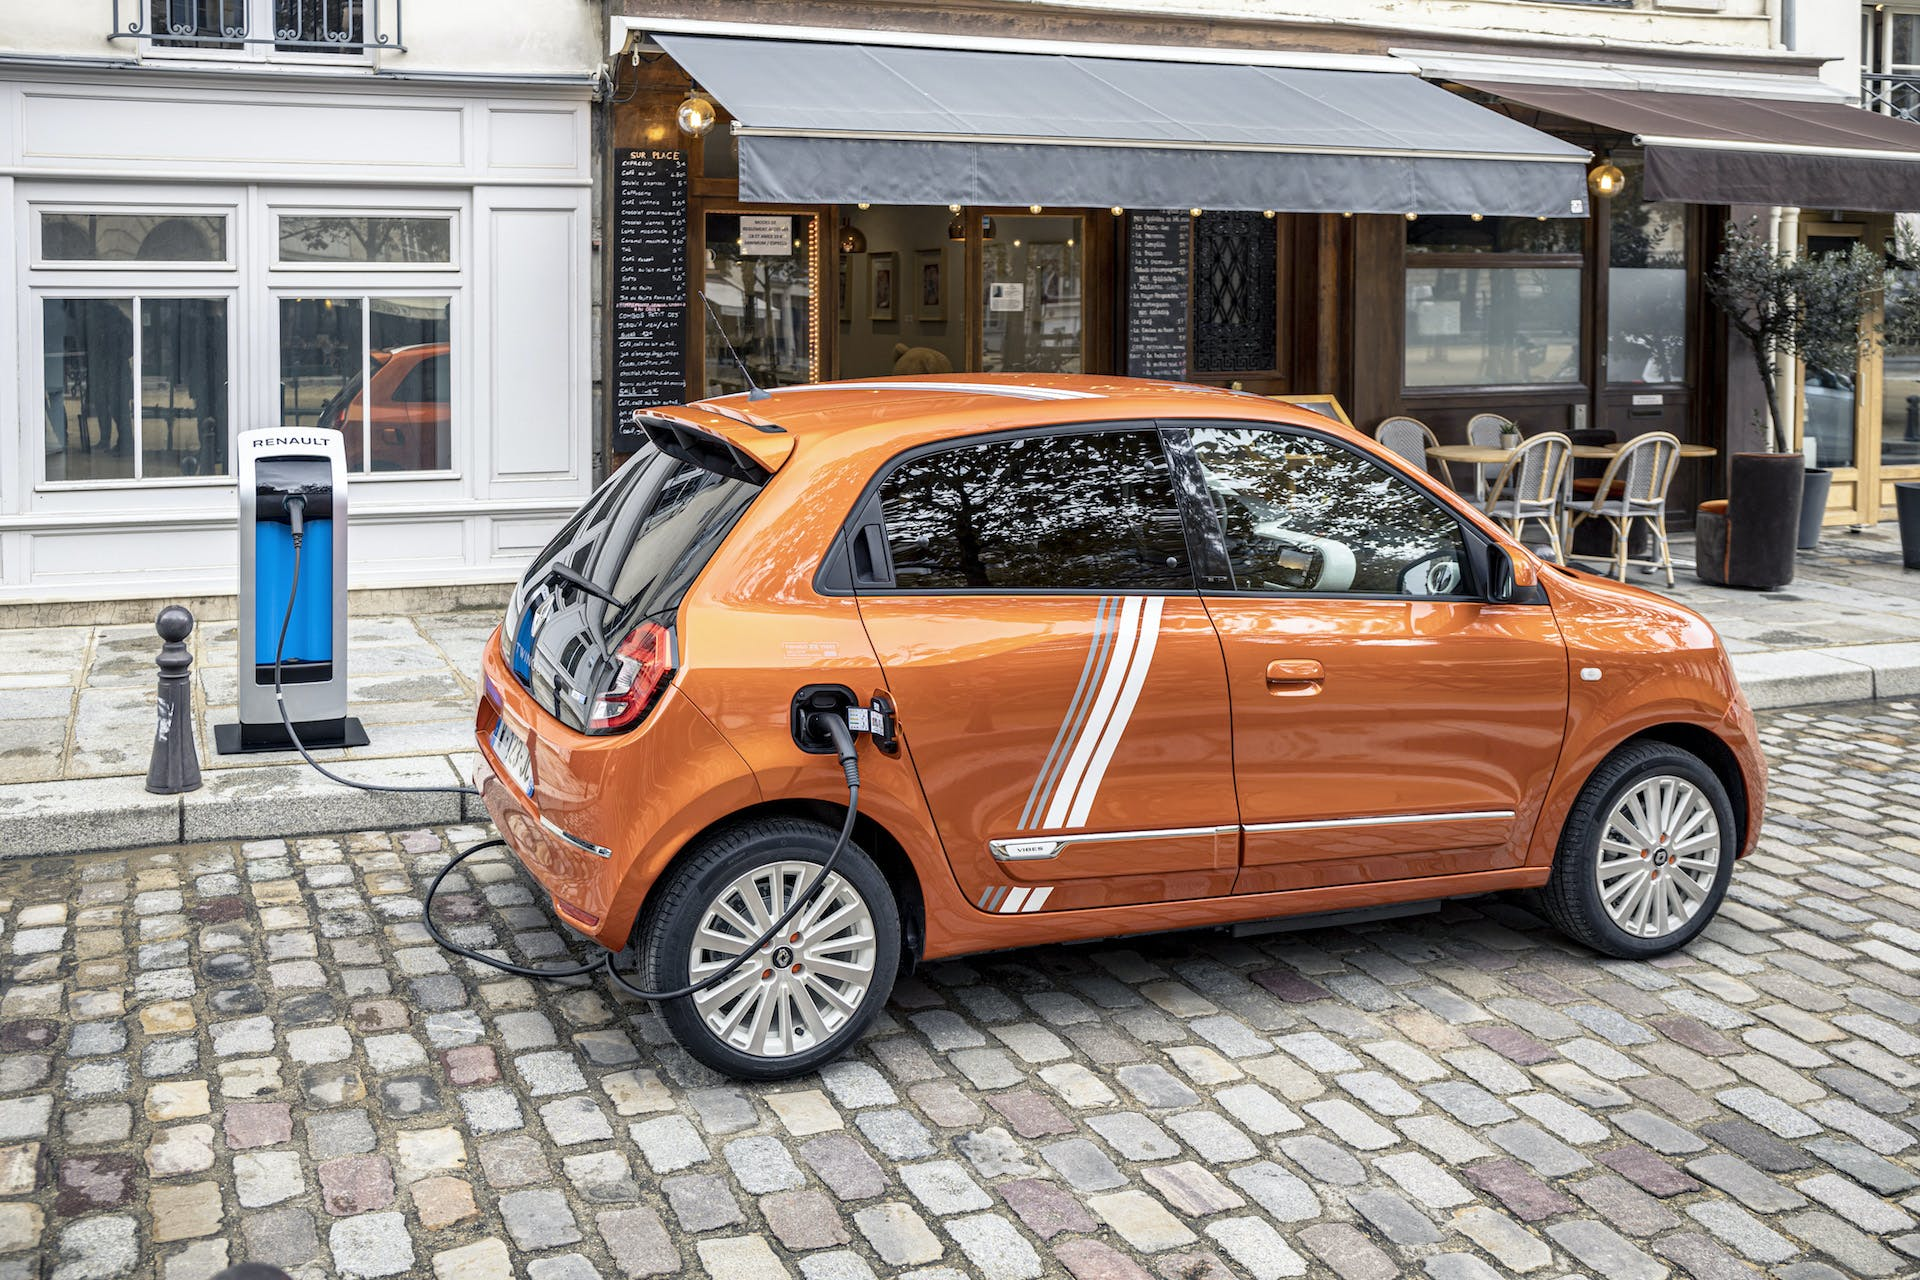 2020 - Renault TWINGO Electric - Vibes Limited Edition